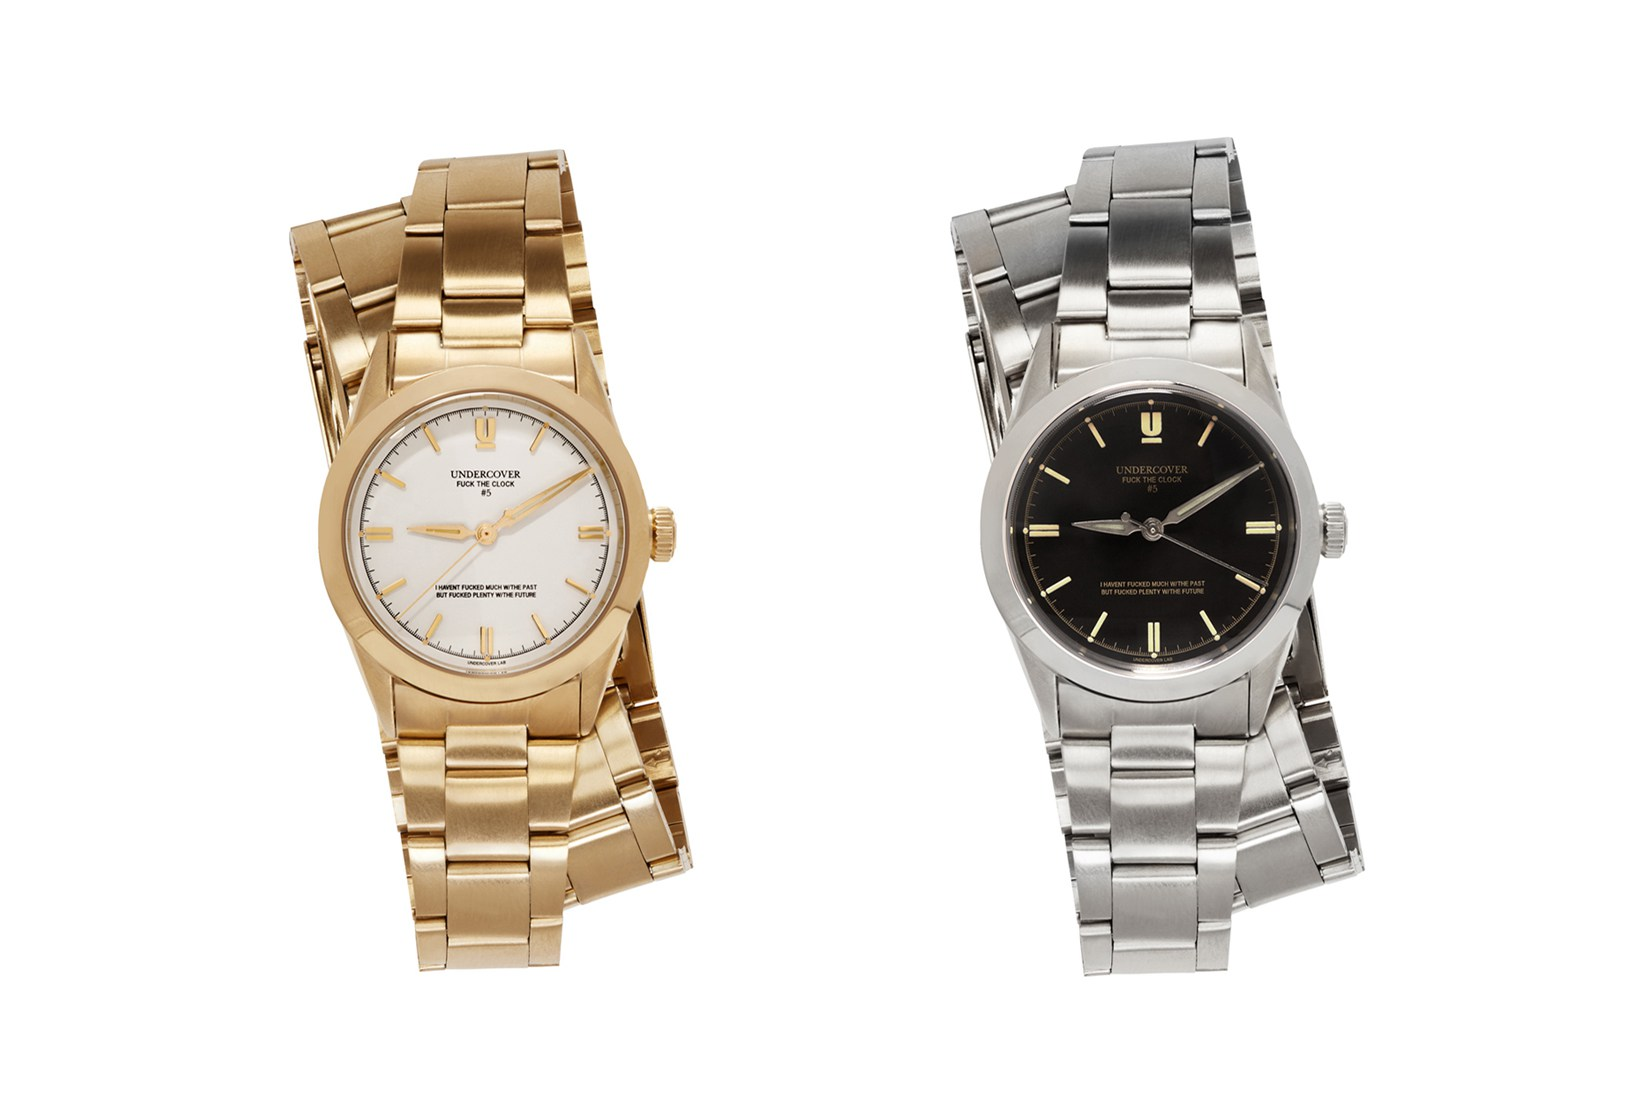 UNDERCOVER Watches; Gold or Silver?